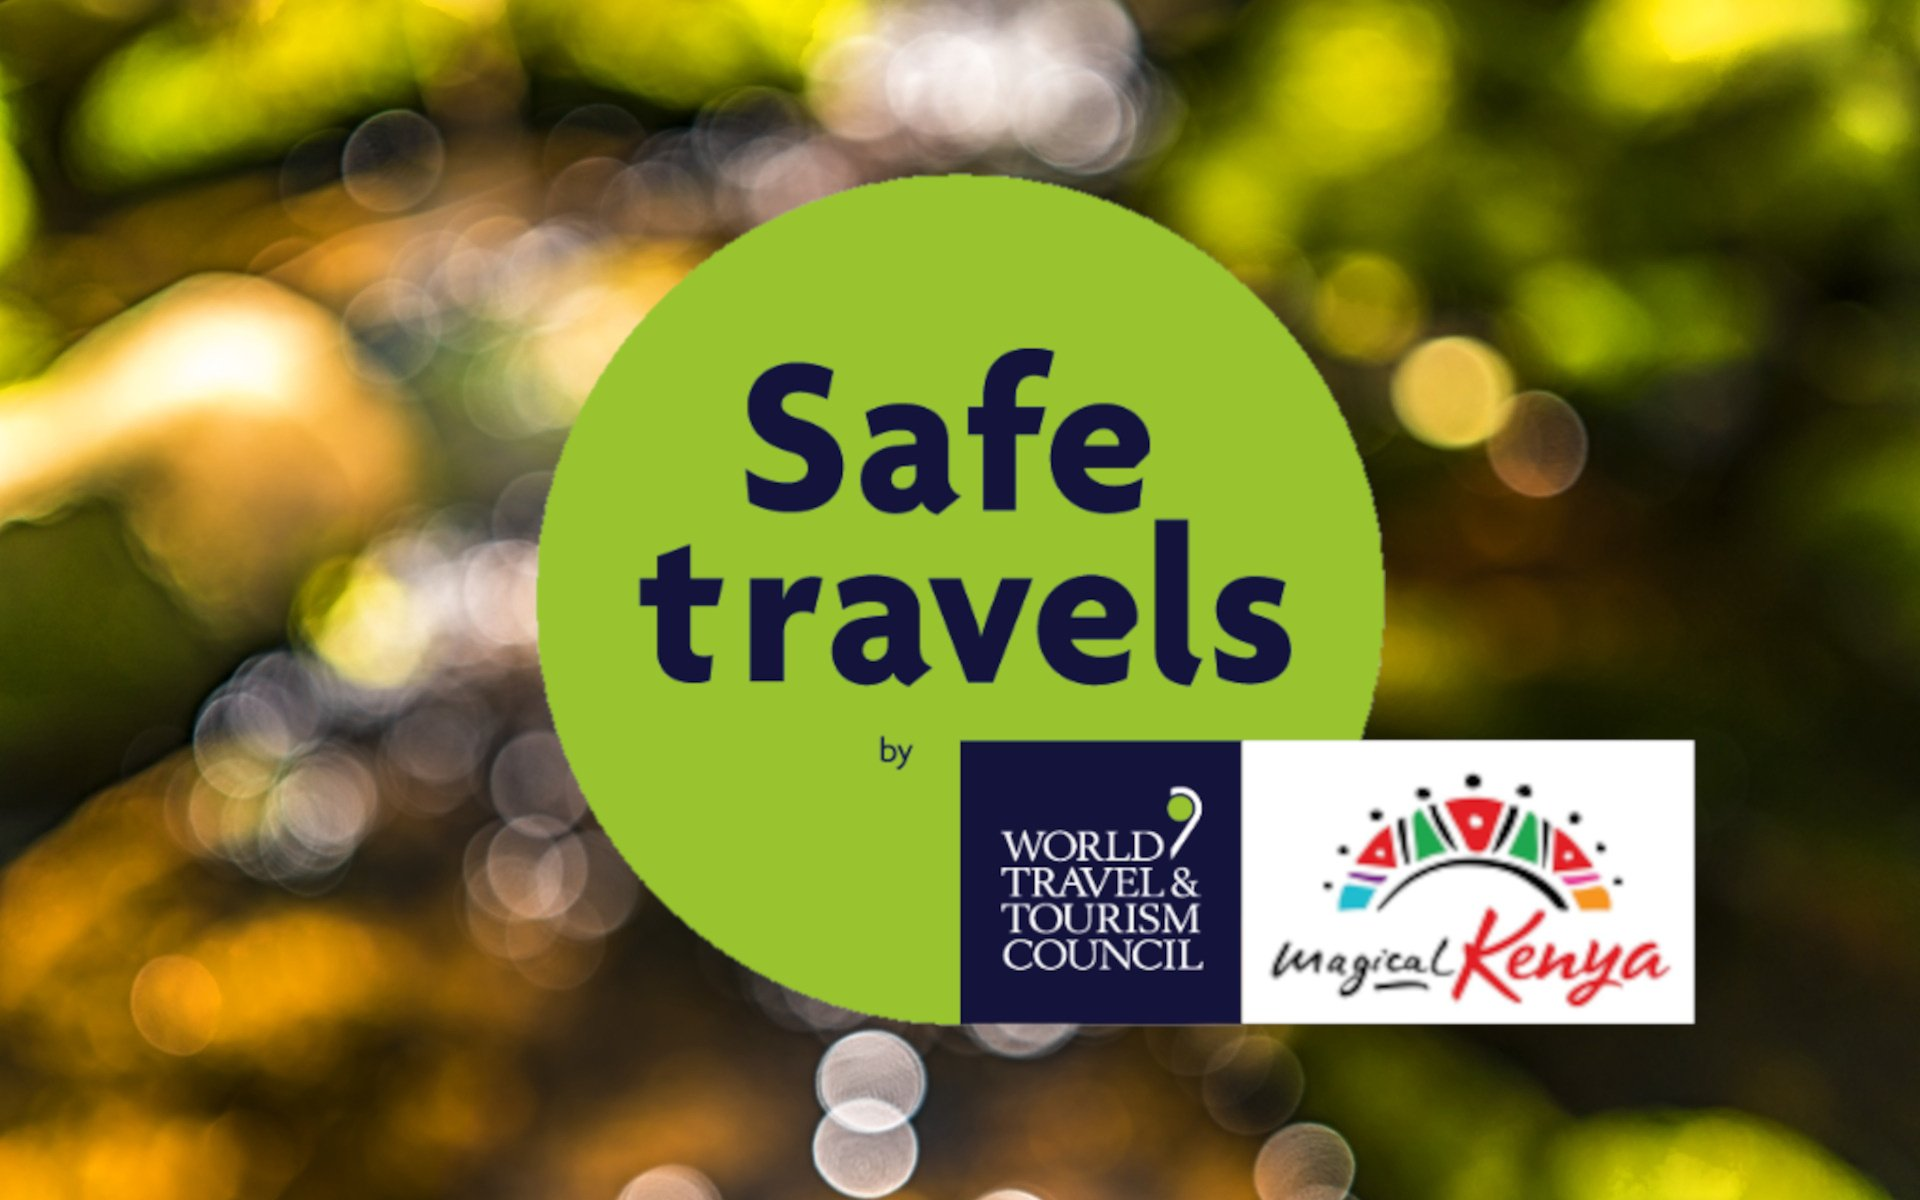 Today Kenya has joined over 80 other global destinations certified by the World Travel and Tourism Council for safe travels. So karibu sana after COVID-19.